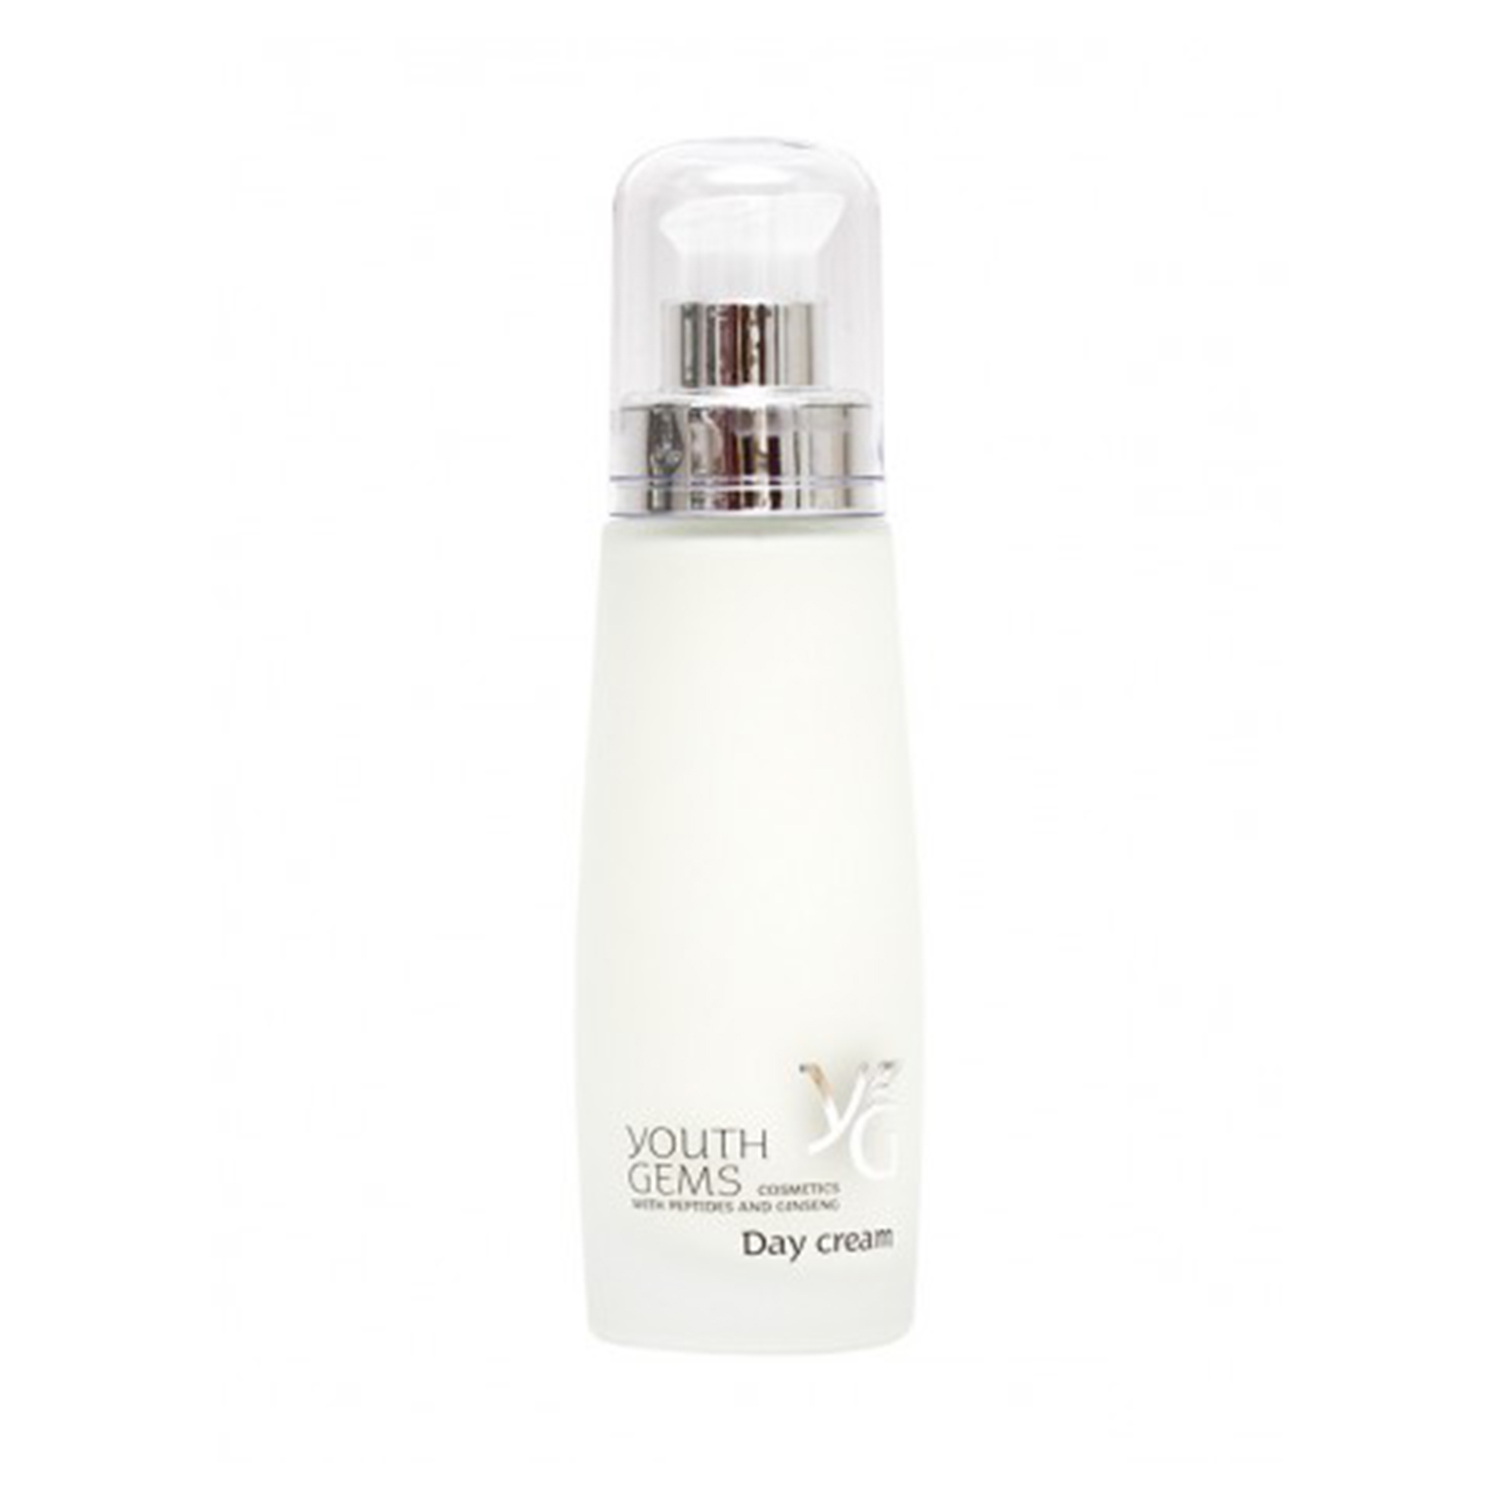 Youth Gems® (day cream)